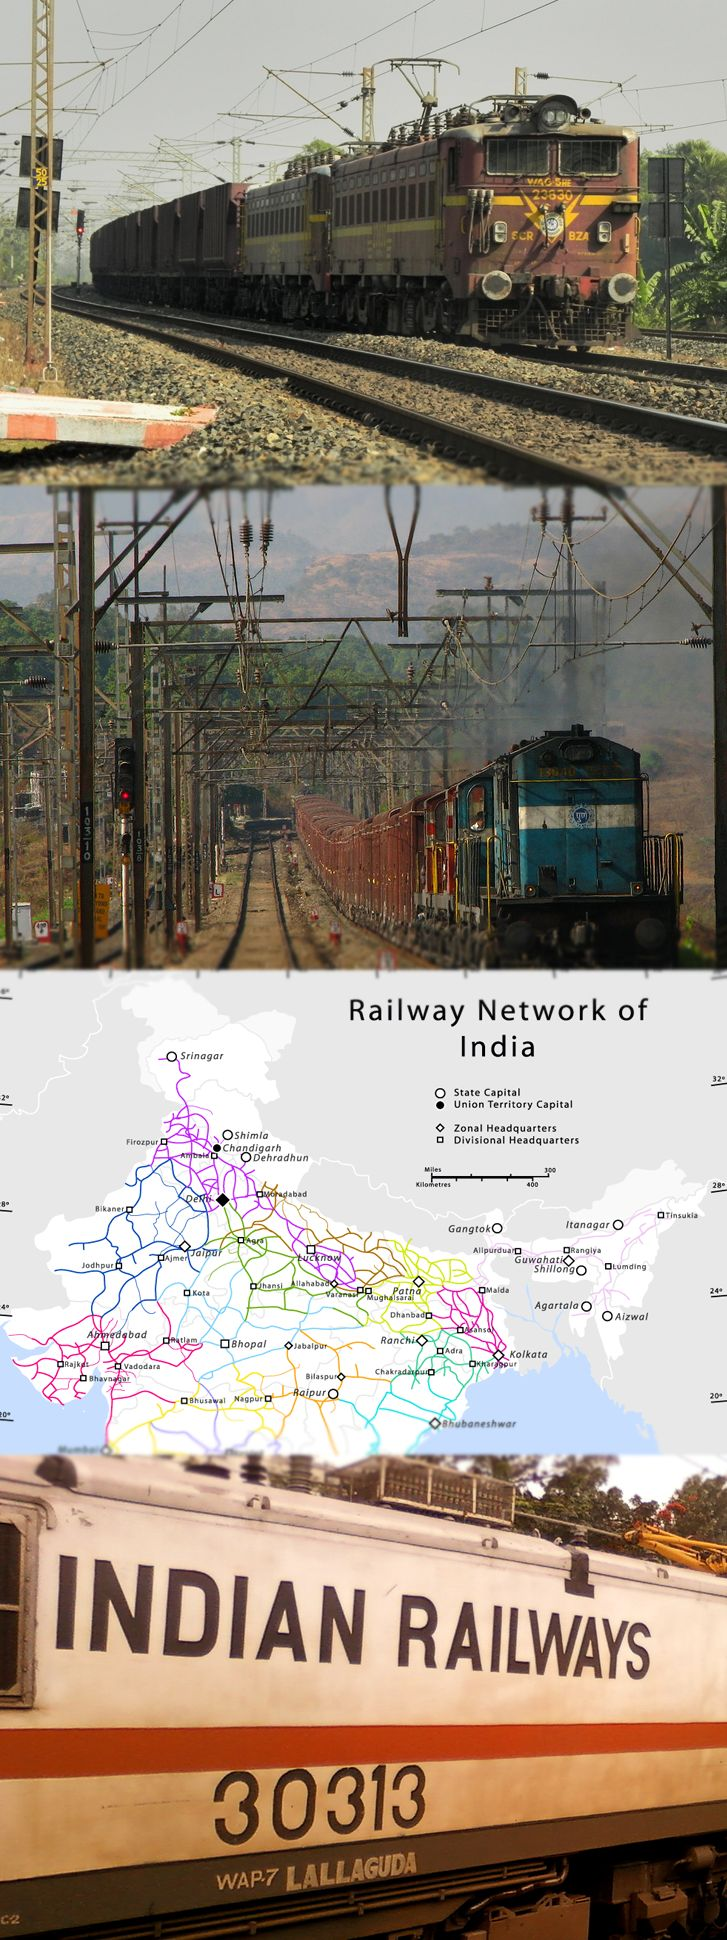 The Rail Plan of 2030 is Definitely the Transport Solution of India with Population of More Than 1.5 Billion Visit at: http://www.cargotoindia.co.uk/blog/rail-plan-2030-definitely-transport-solution-india-population-1-5-billion/